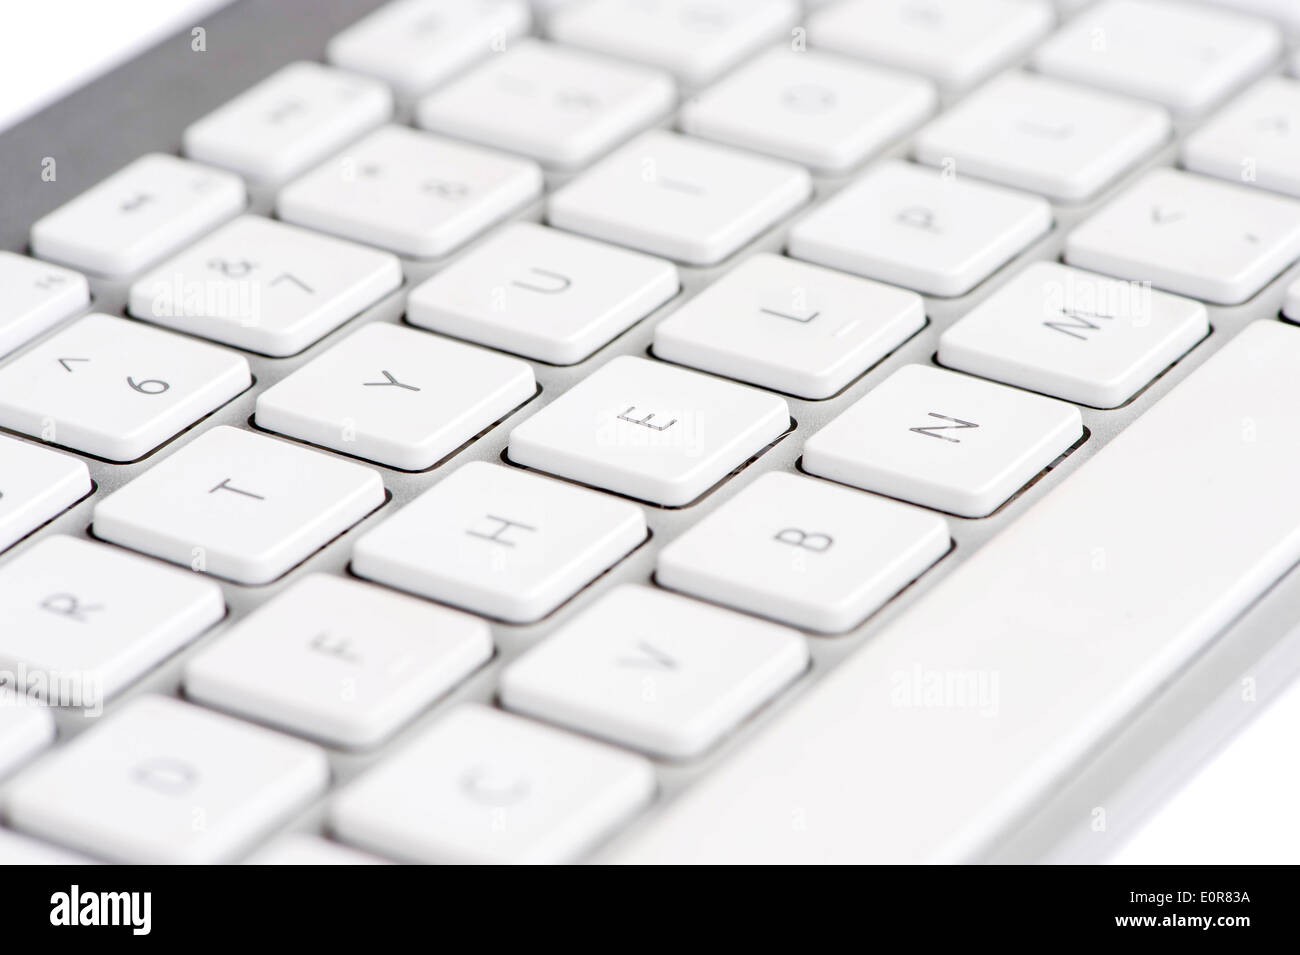 Apple mac white Keyboard spelling out the word HELP - Stock Image